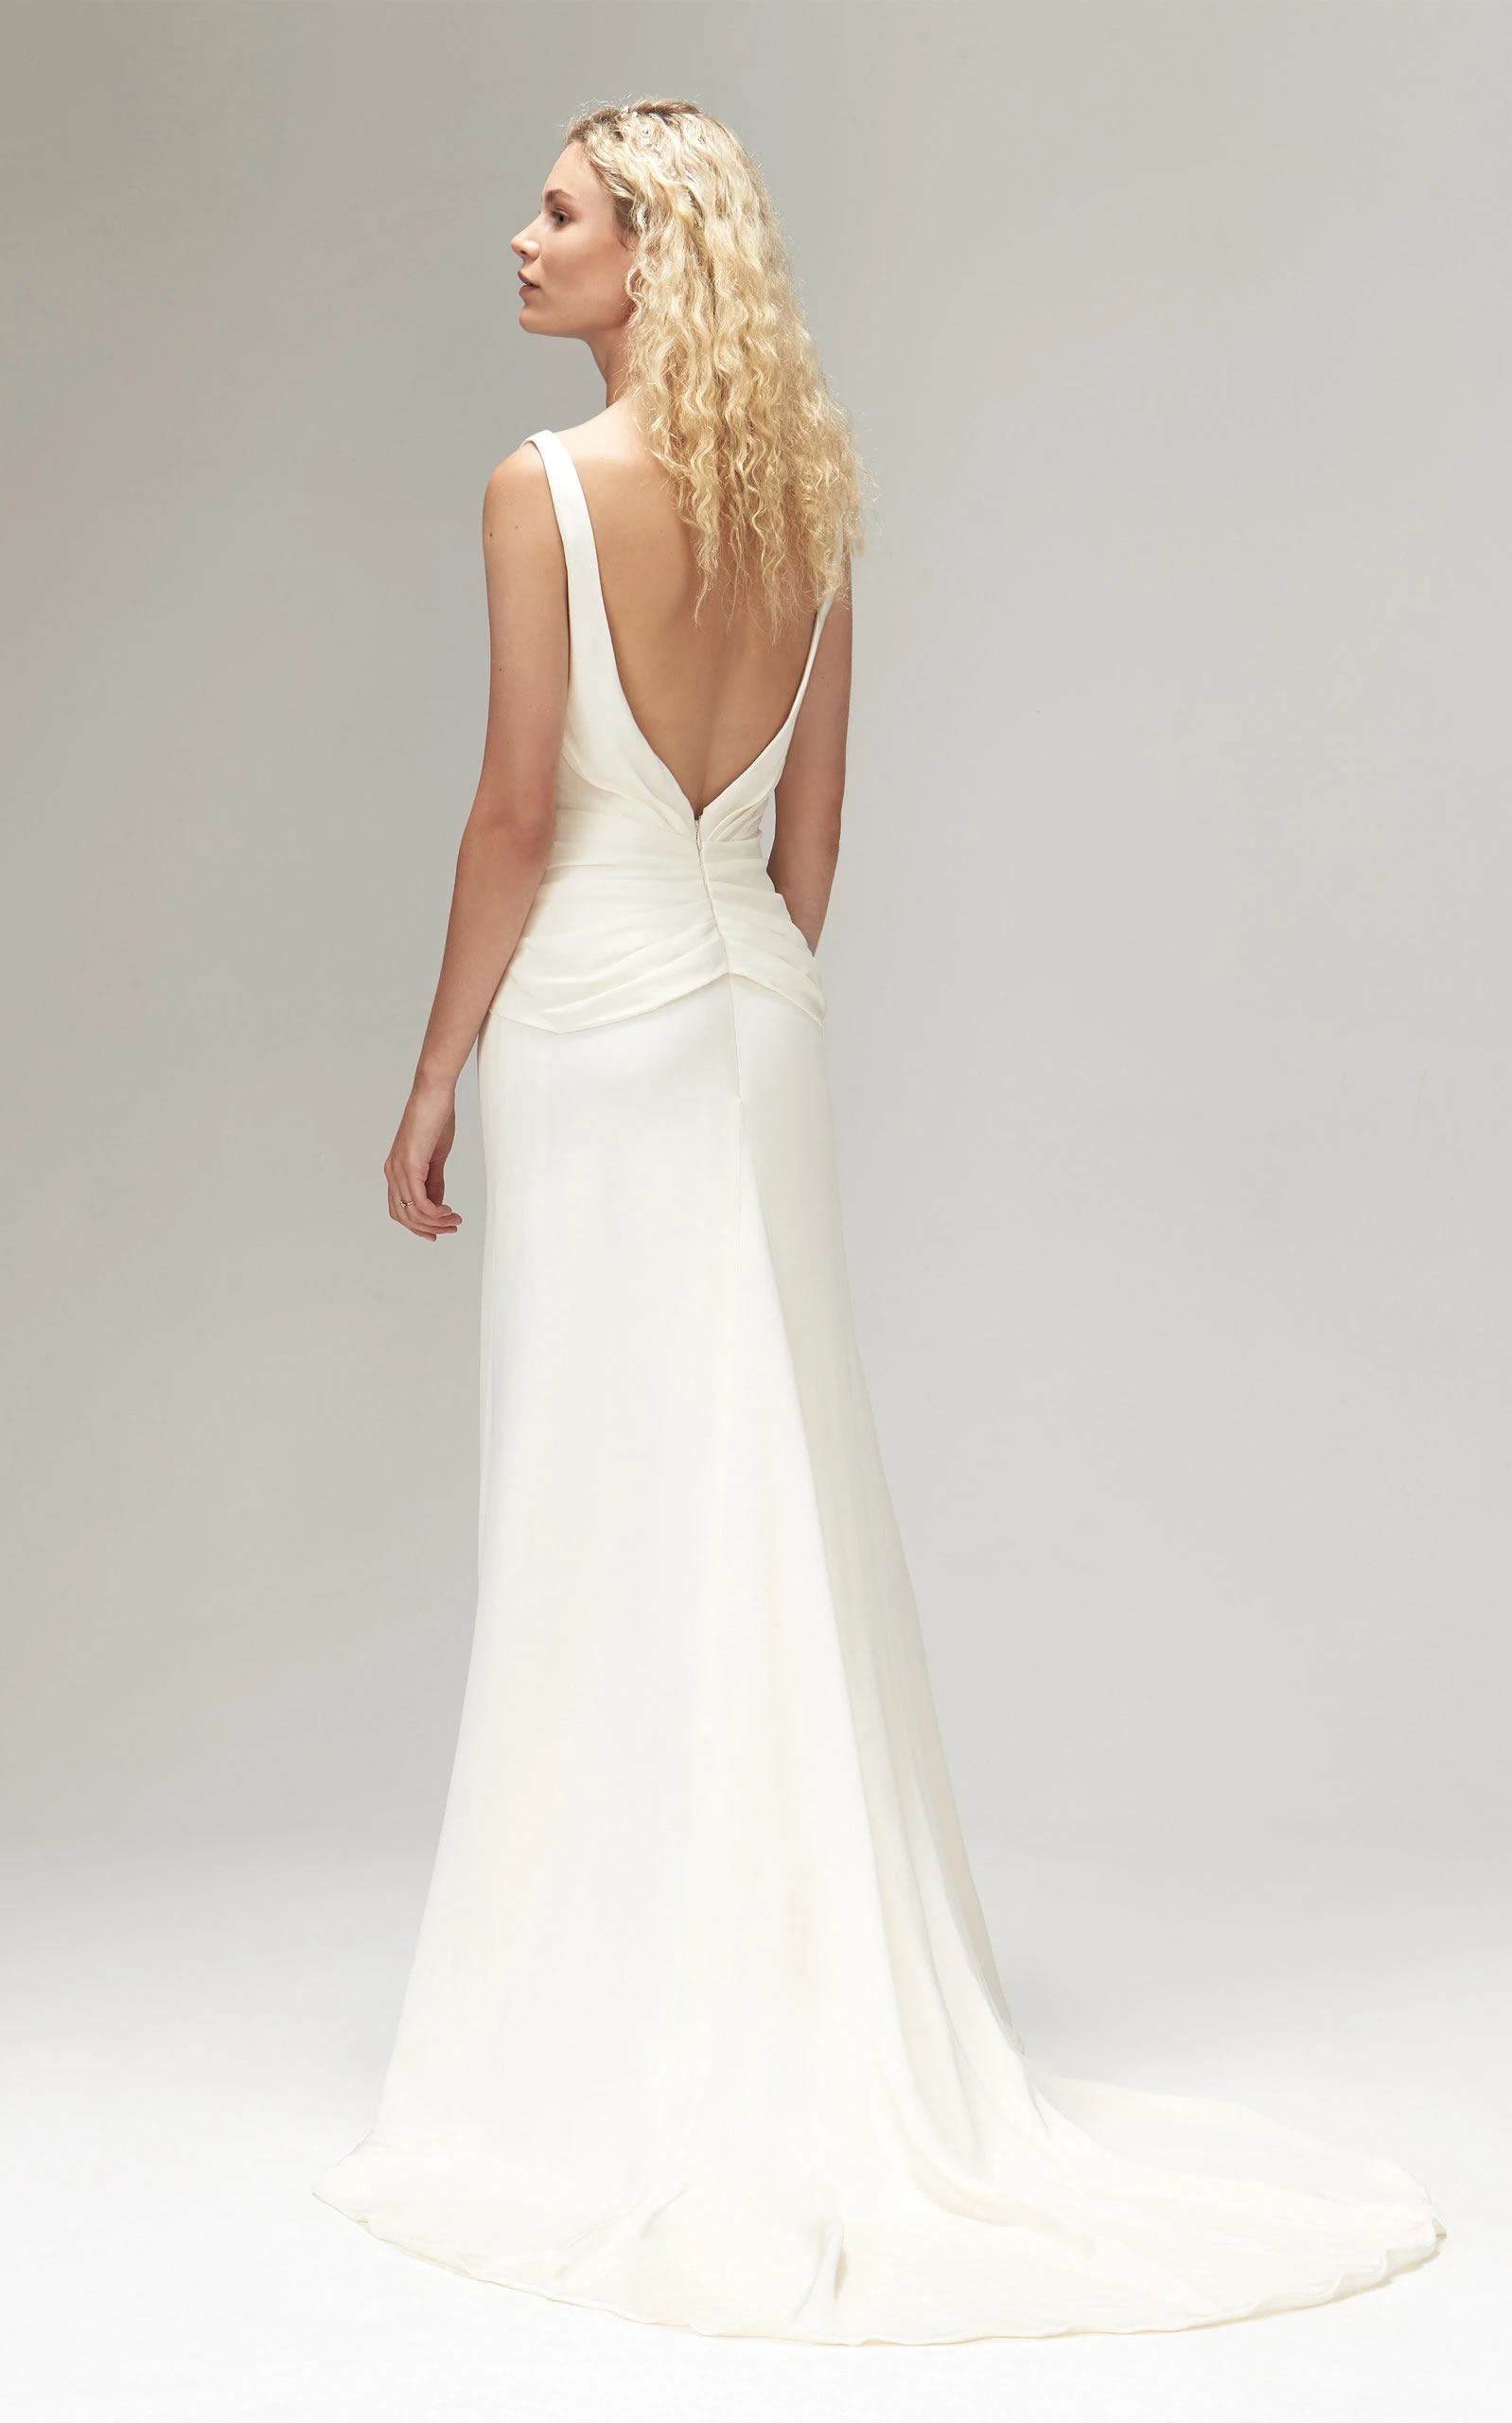 Savannah Miller - Amadine Crepe Plunging Back Gown With Side Split